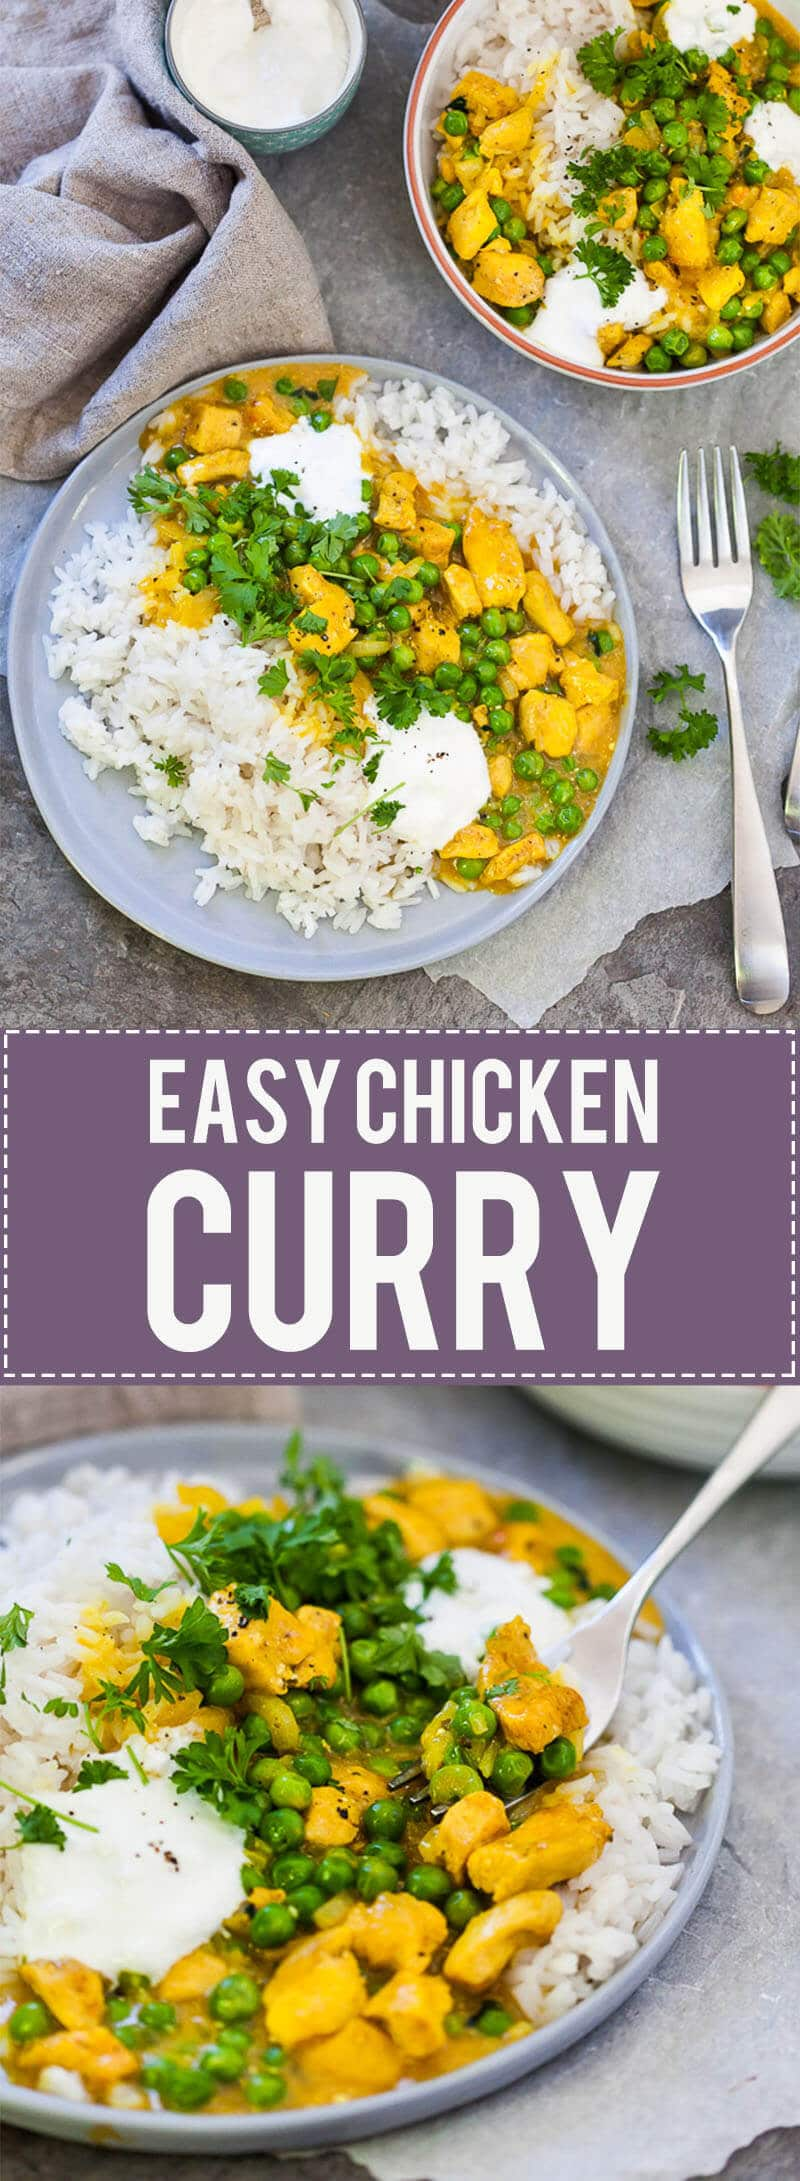 An Easy Chicken Curry is all you need on a gloomy winter day. Pair with plain fluffy rice and some sour cream for a perfect easy meal.